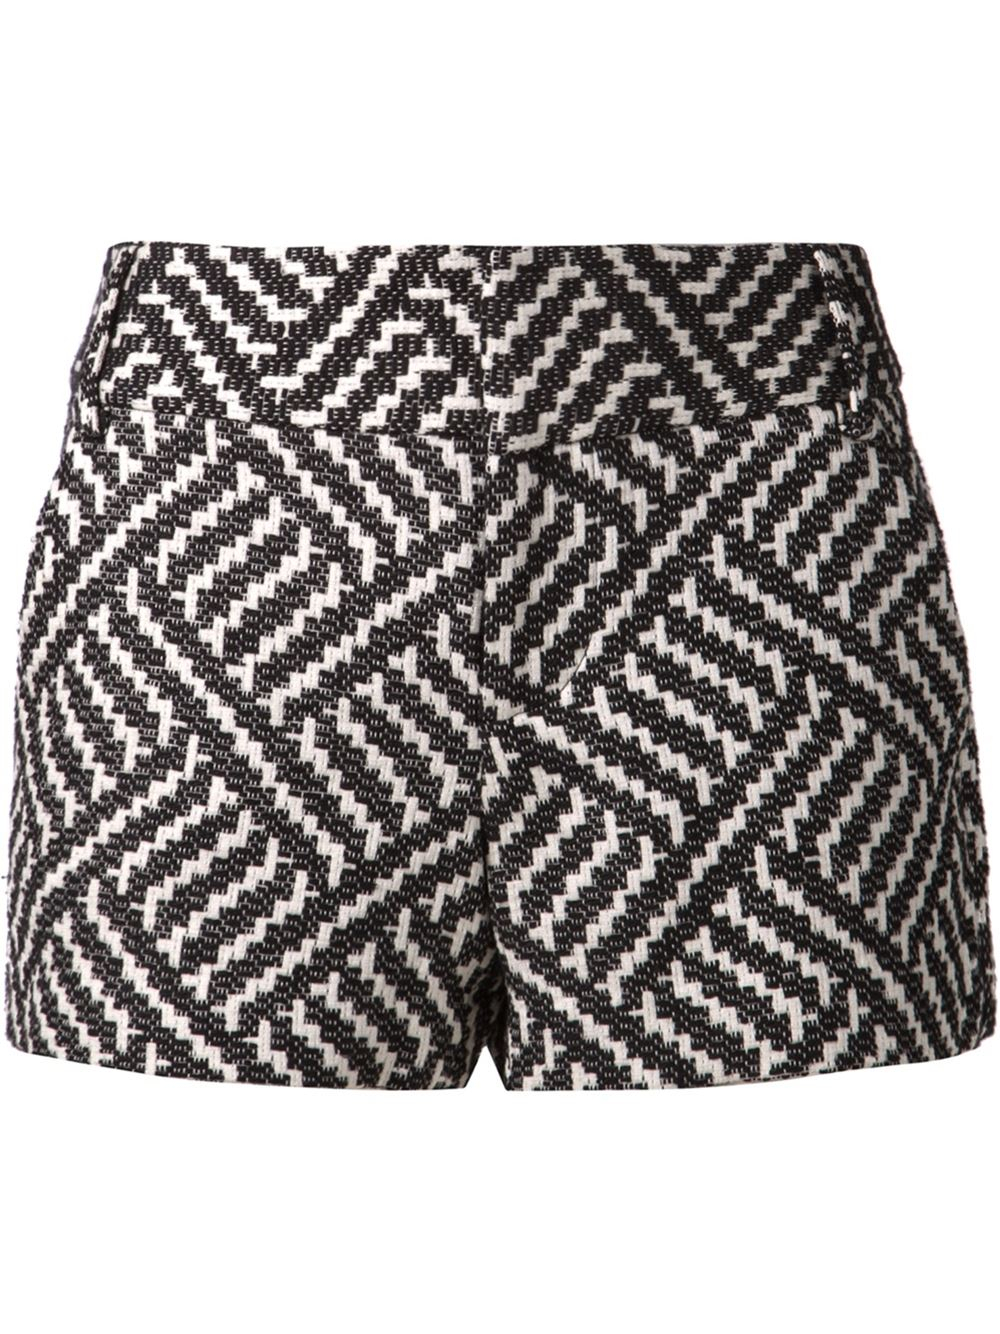 Alice   olivia 'Cady' Patterned Shorts in Black | Lyst